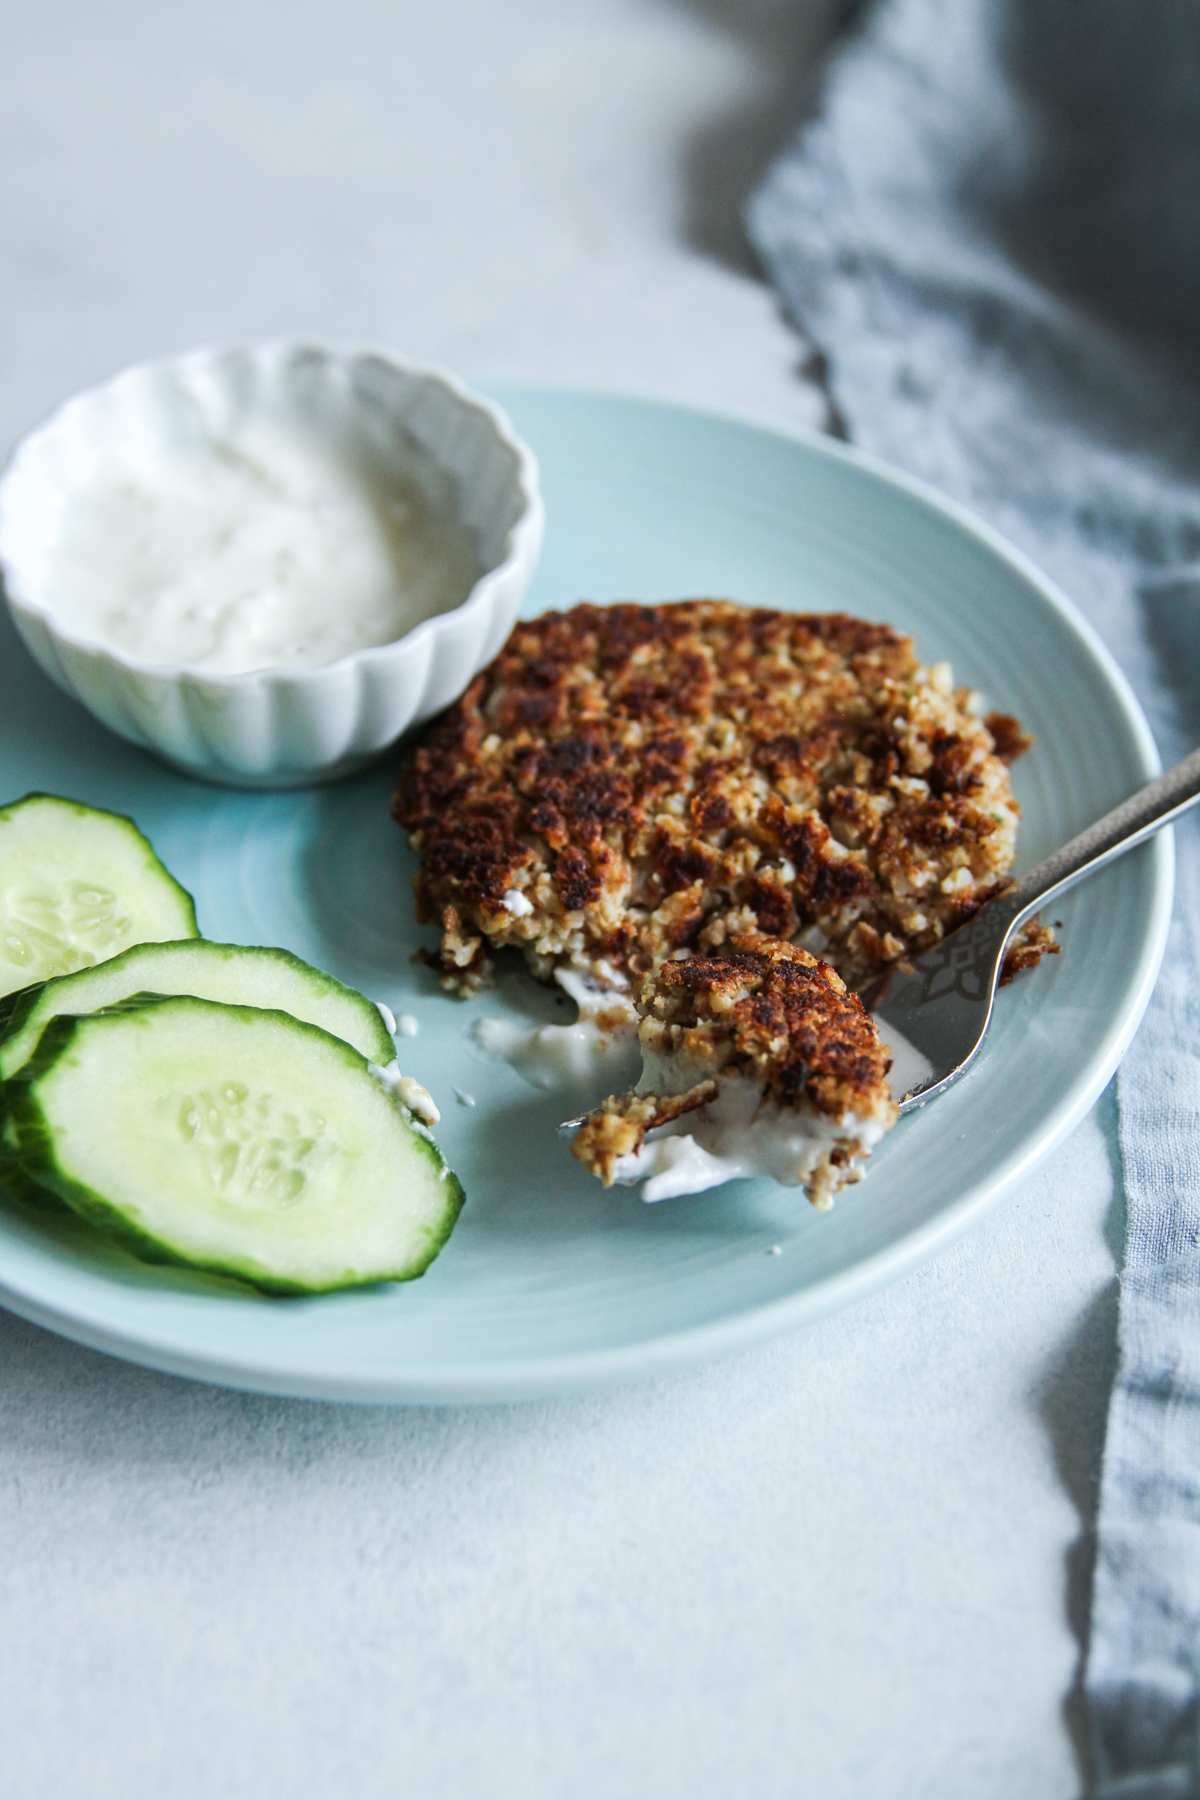 Lentil cauliflower burgers with yogurt sauce